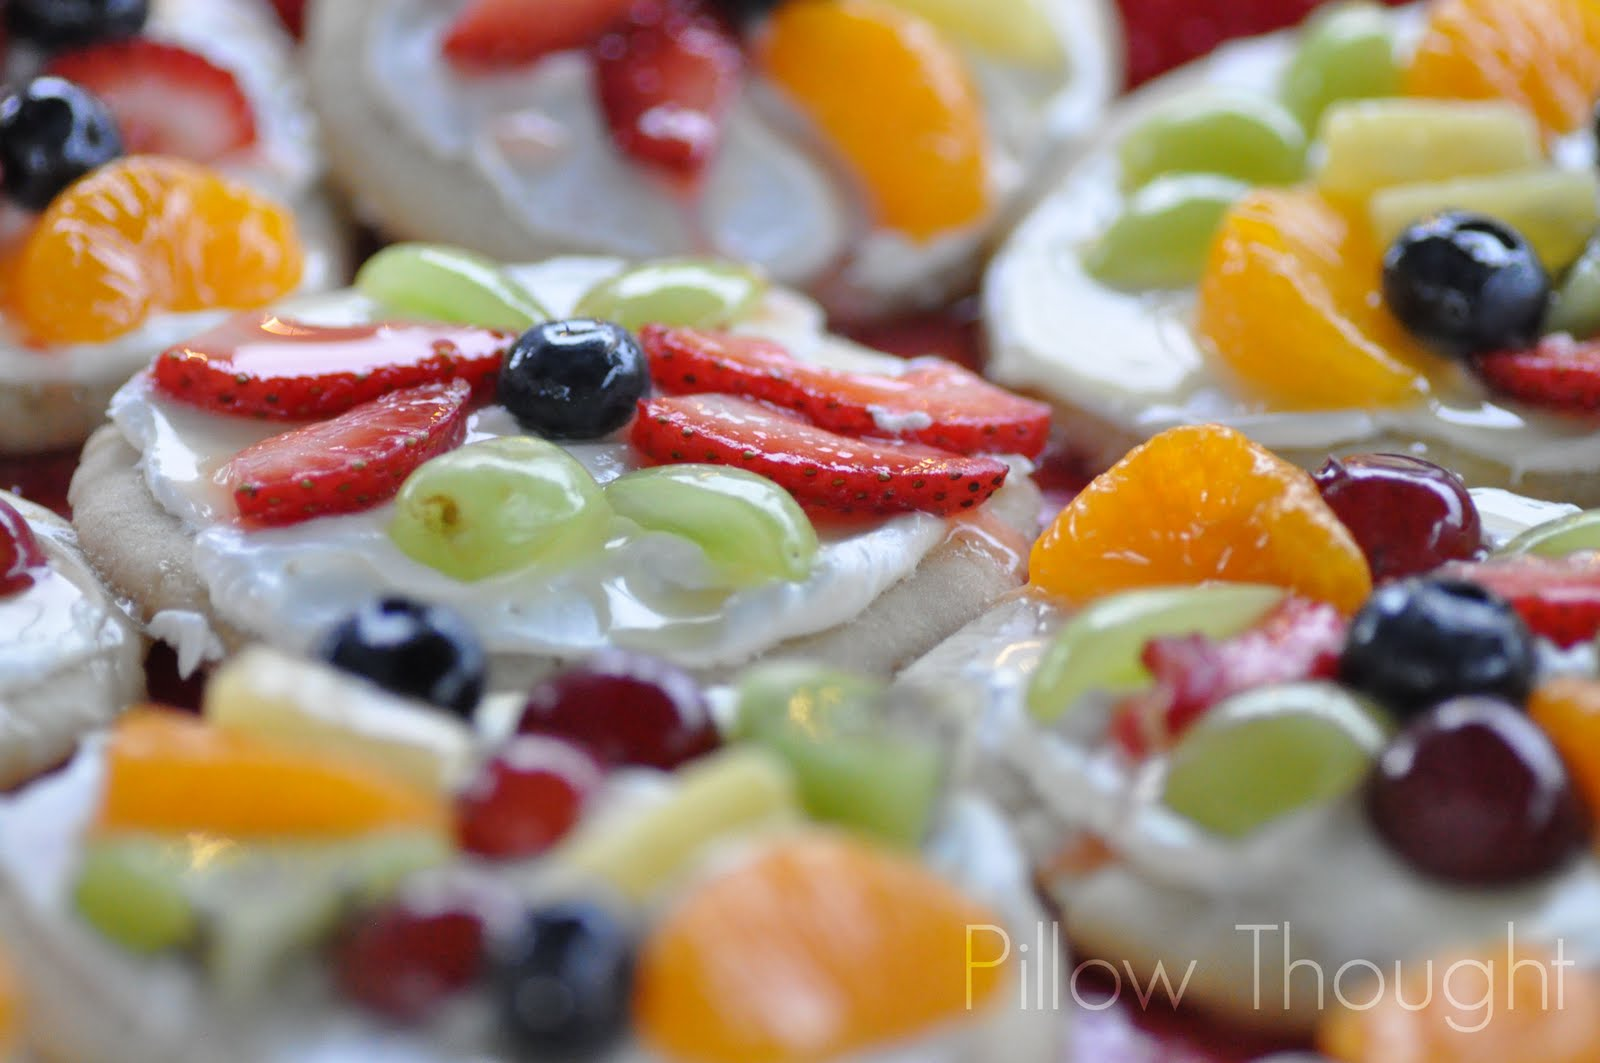 Pillow Thought: Thursday's Tip {Sugar Cookie Fruit Pizzas}